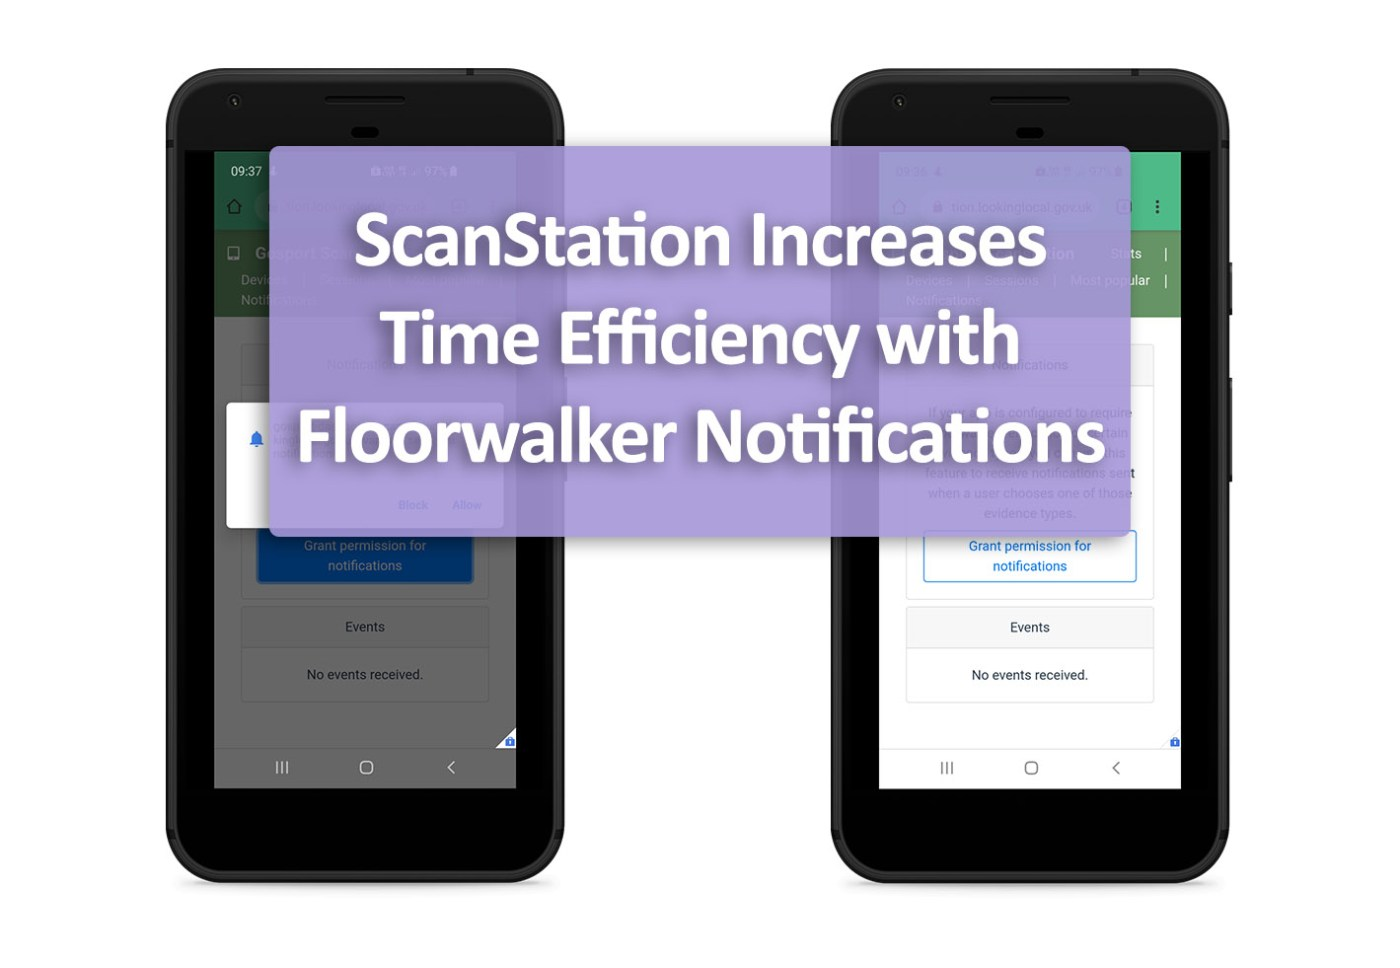 ScanStation Increases Time Efficiency with Floorwalker Notifications